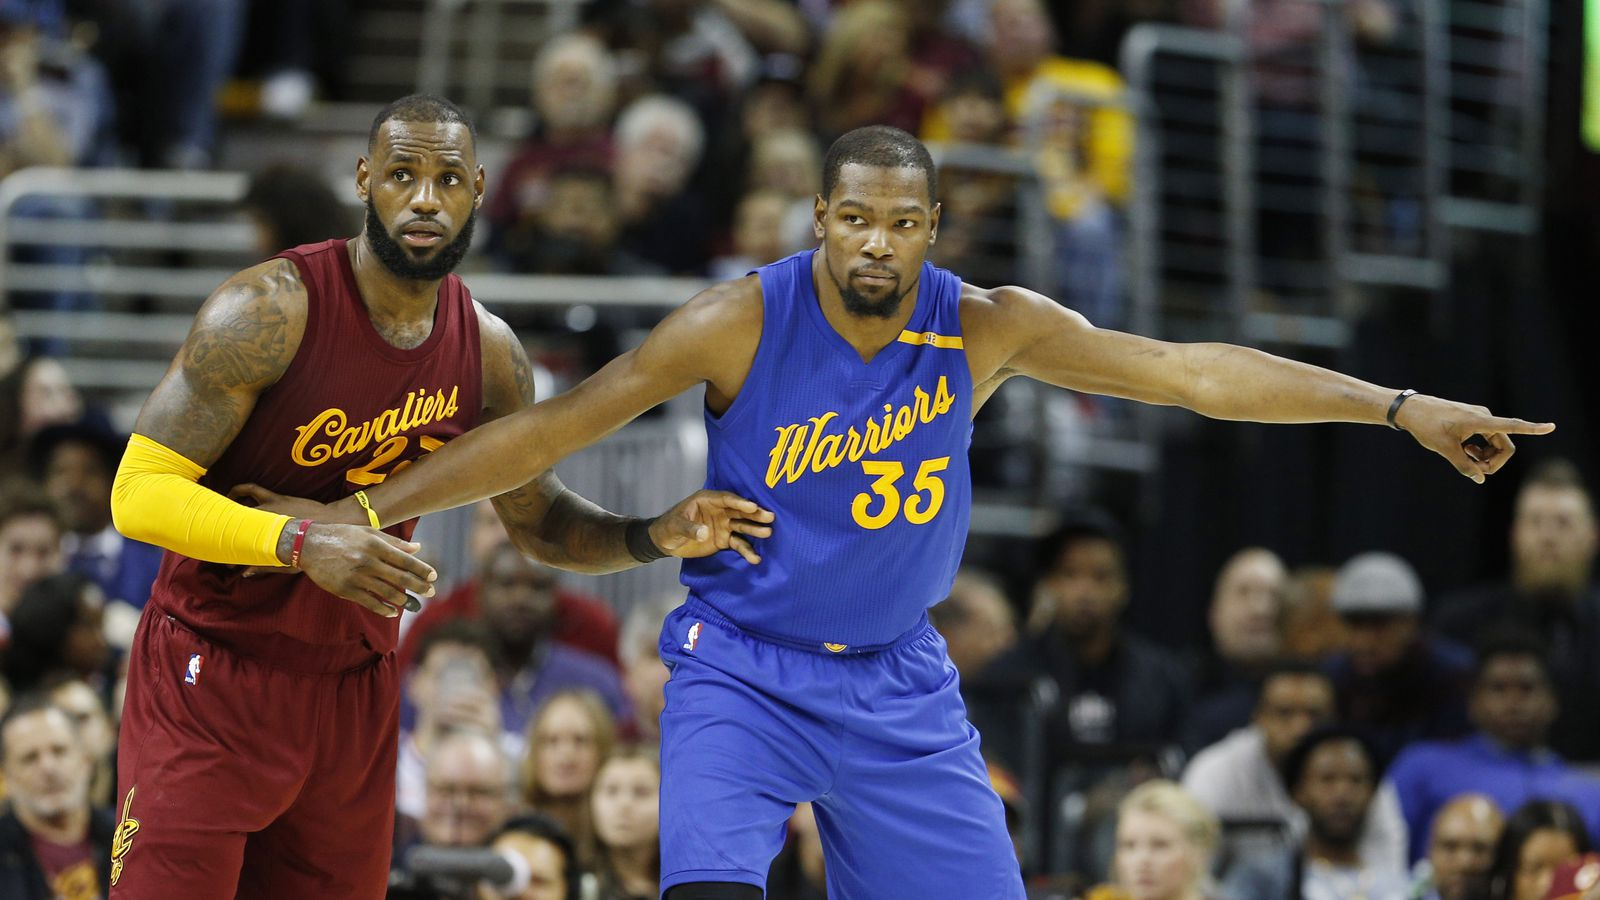 cavaliers warriors ratings surge as nba games battle football on christmas day - Christmas Day College Football